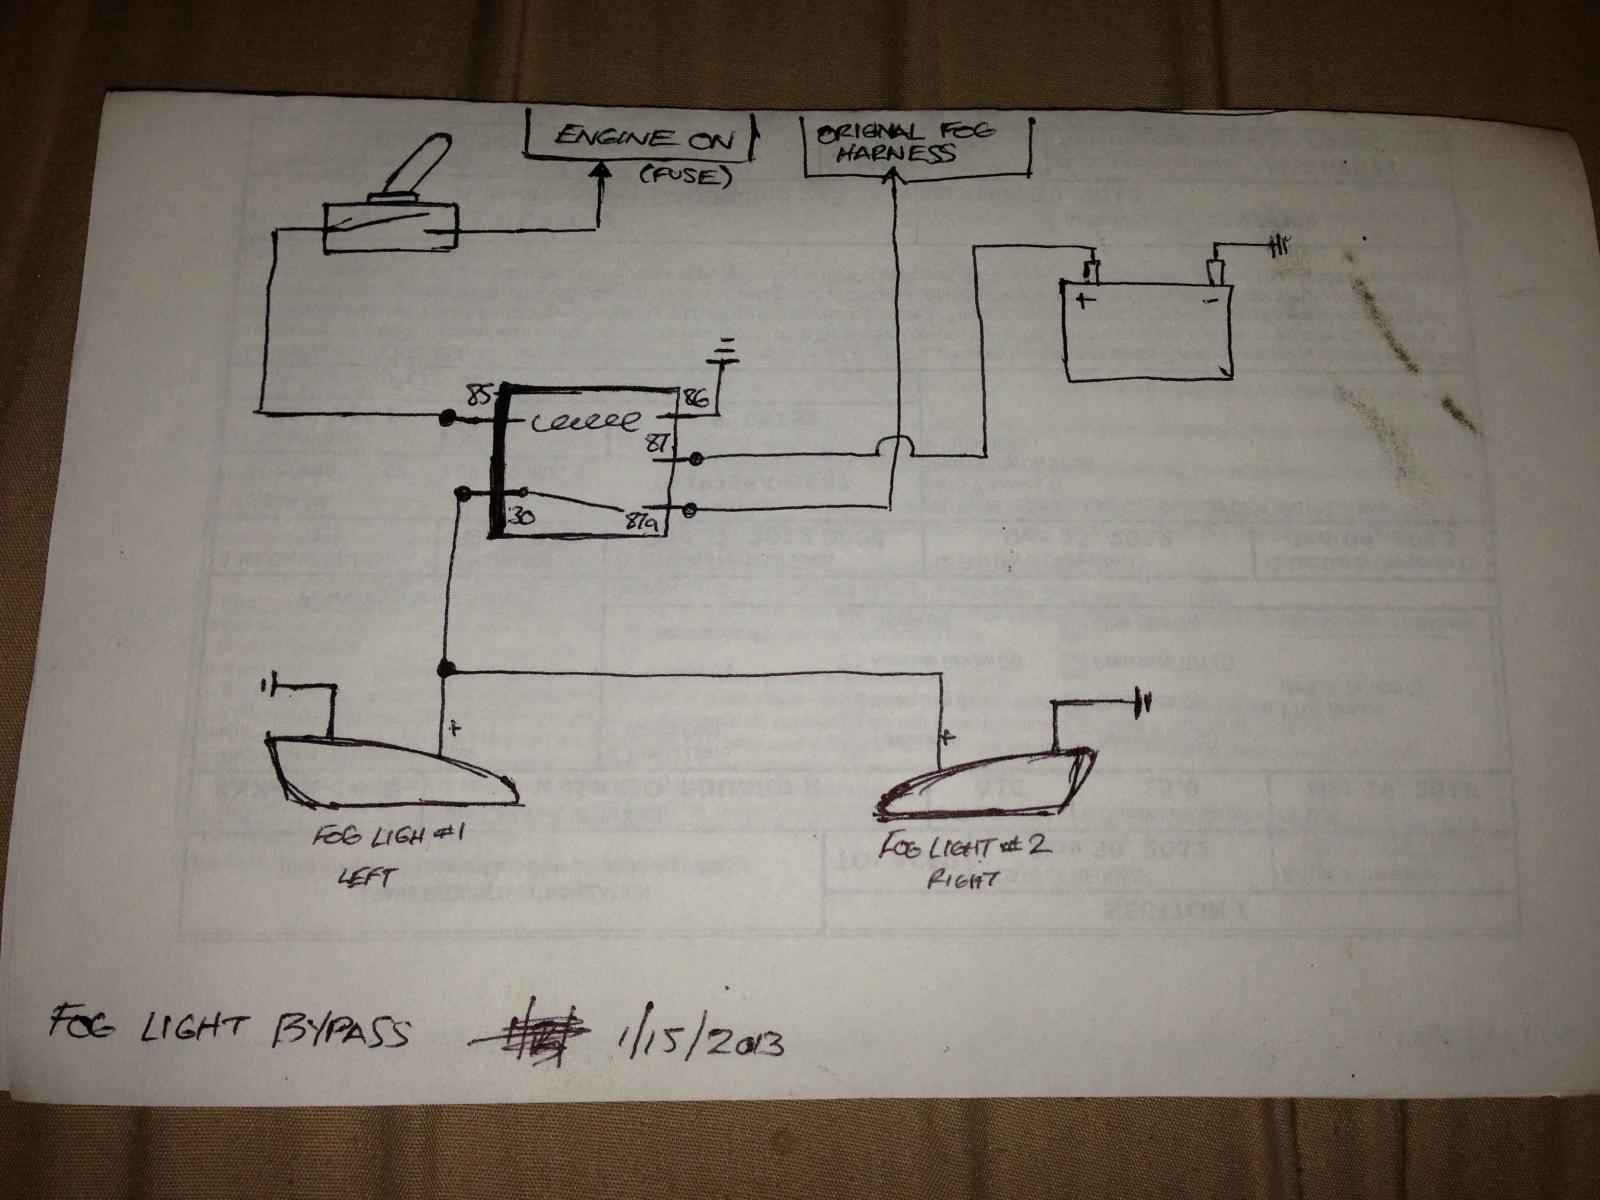 Headlamp Wiring A Car Diagram Master Blogs H4 Headlight Connector Simple To Bypass Foglights Works W O Headlights Or Rh Optimaforums Com Relay